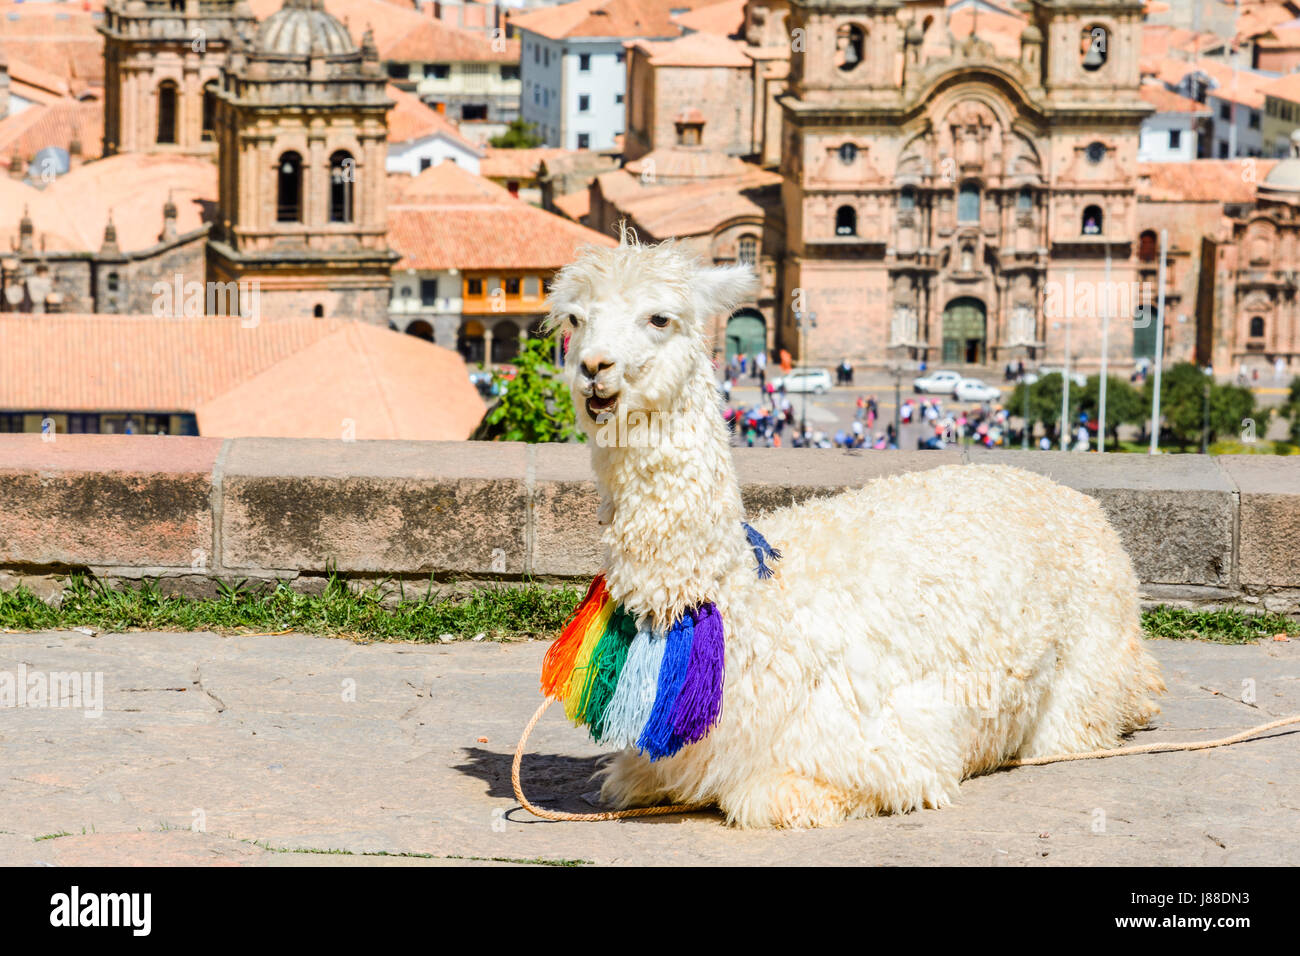 Dormir au Lama de cour de l'église San Cristobal, Cusco, Pérou Photo Stock